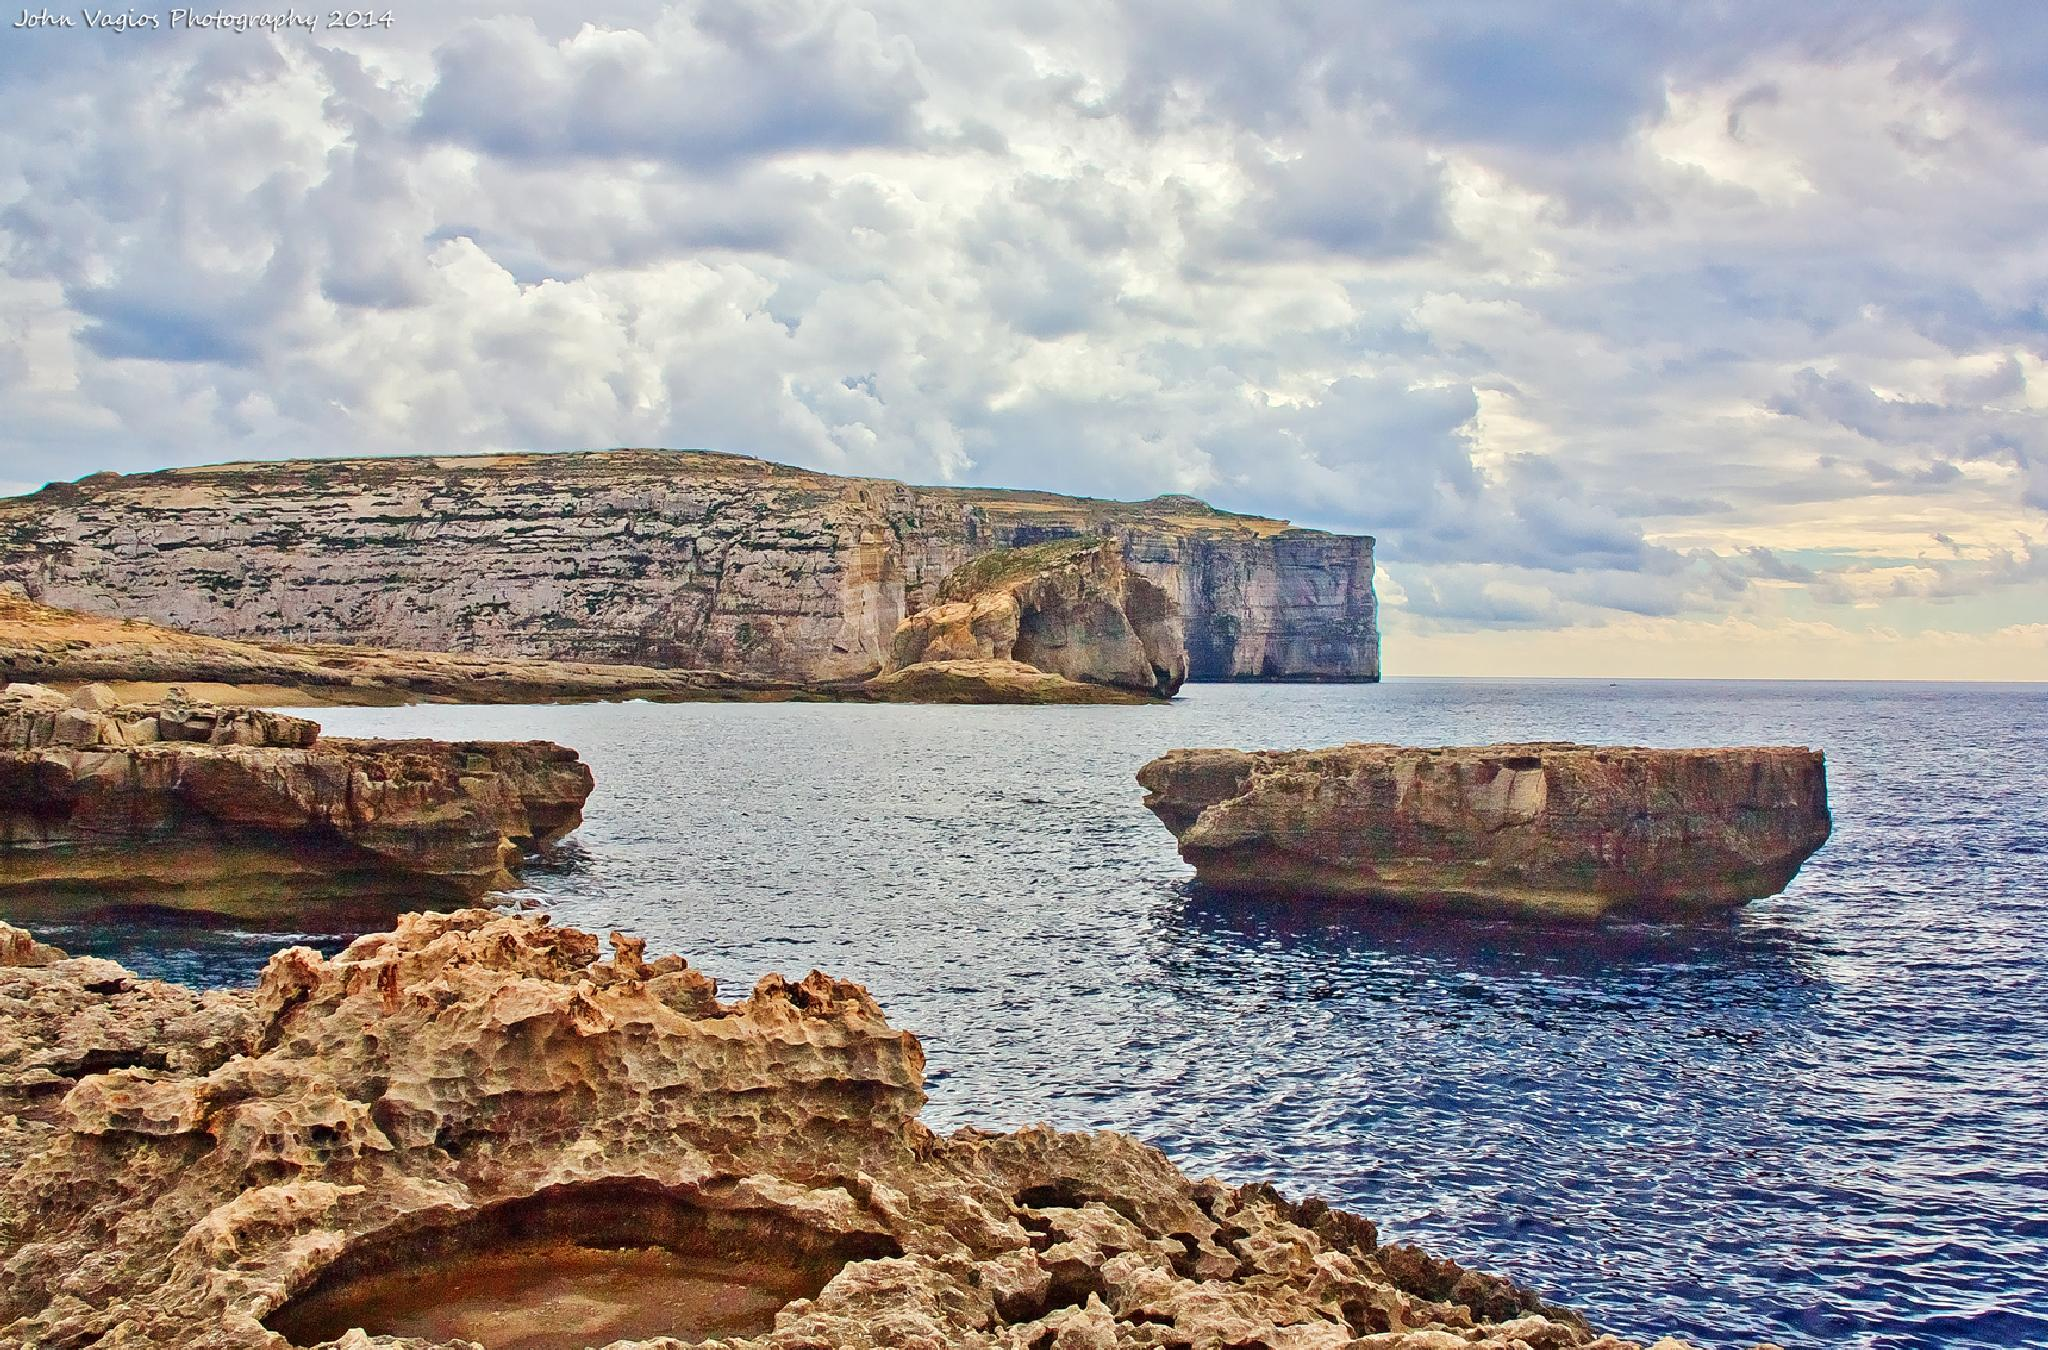 Gozo : Blue window by JohnVagios